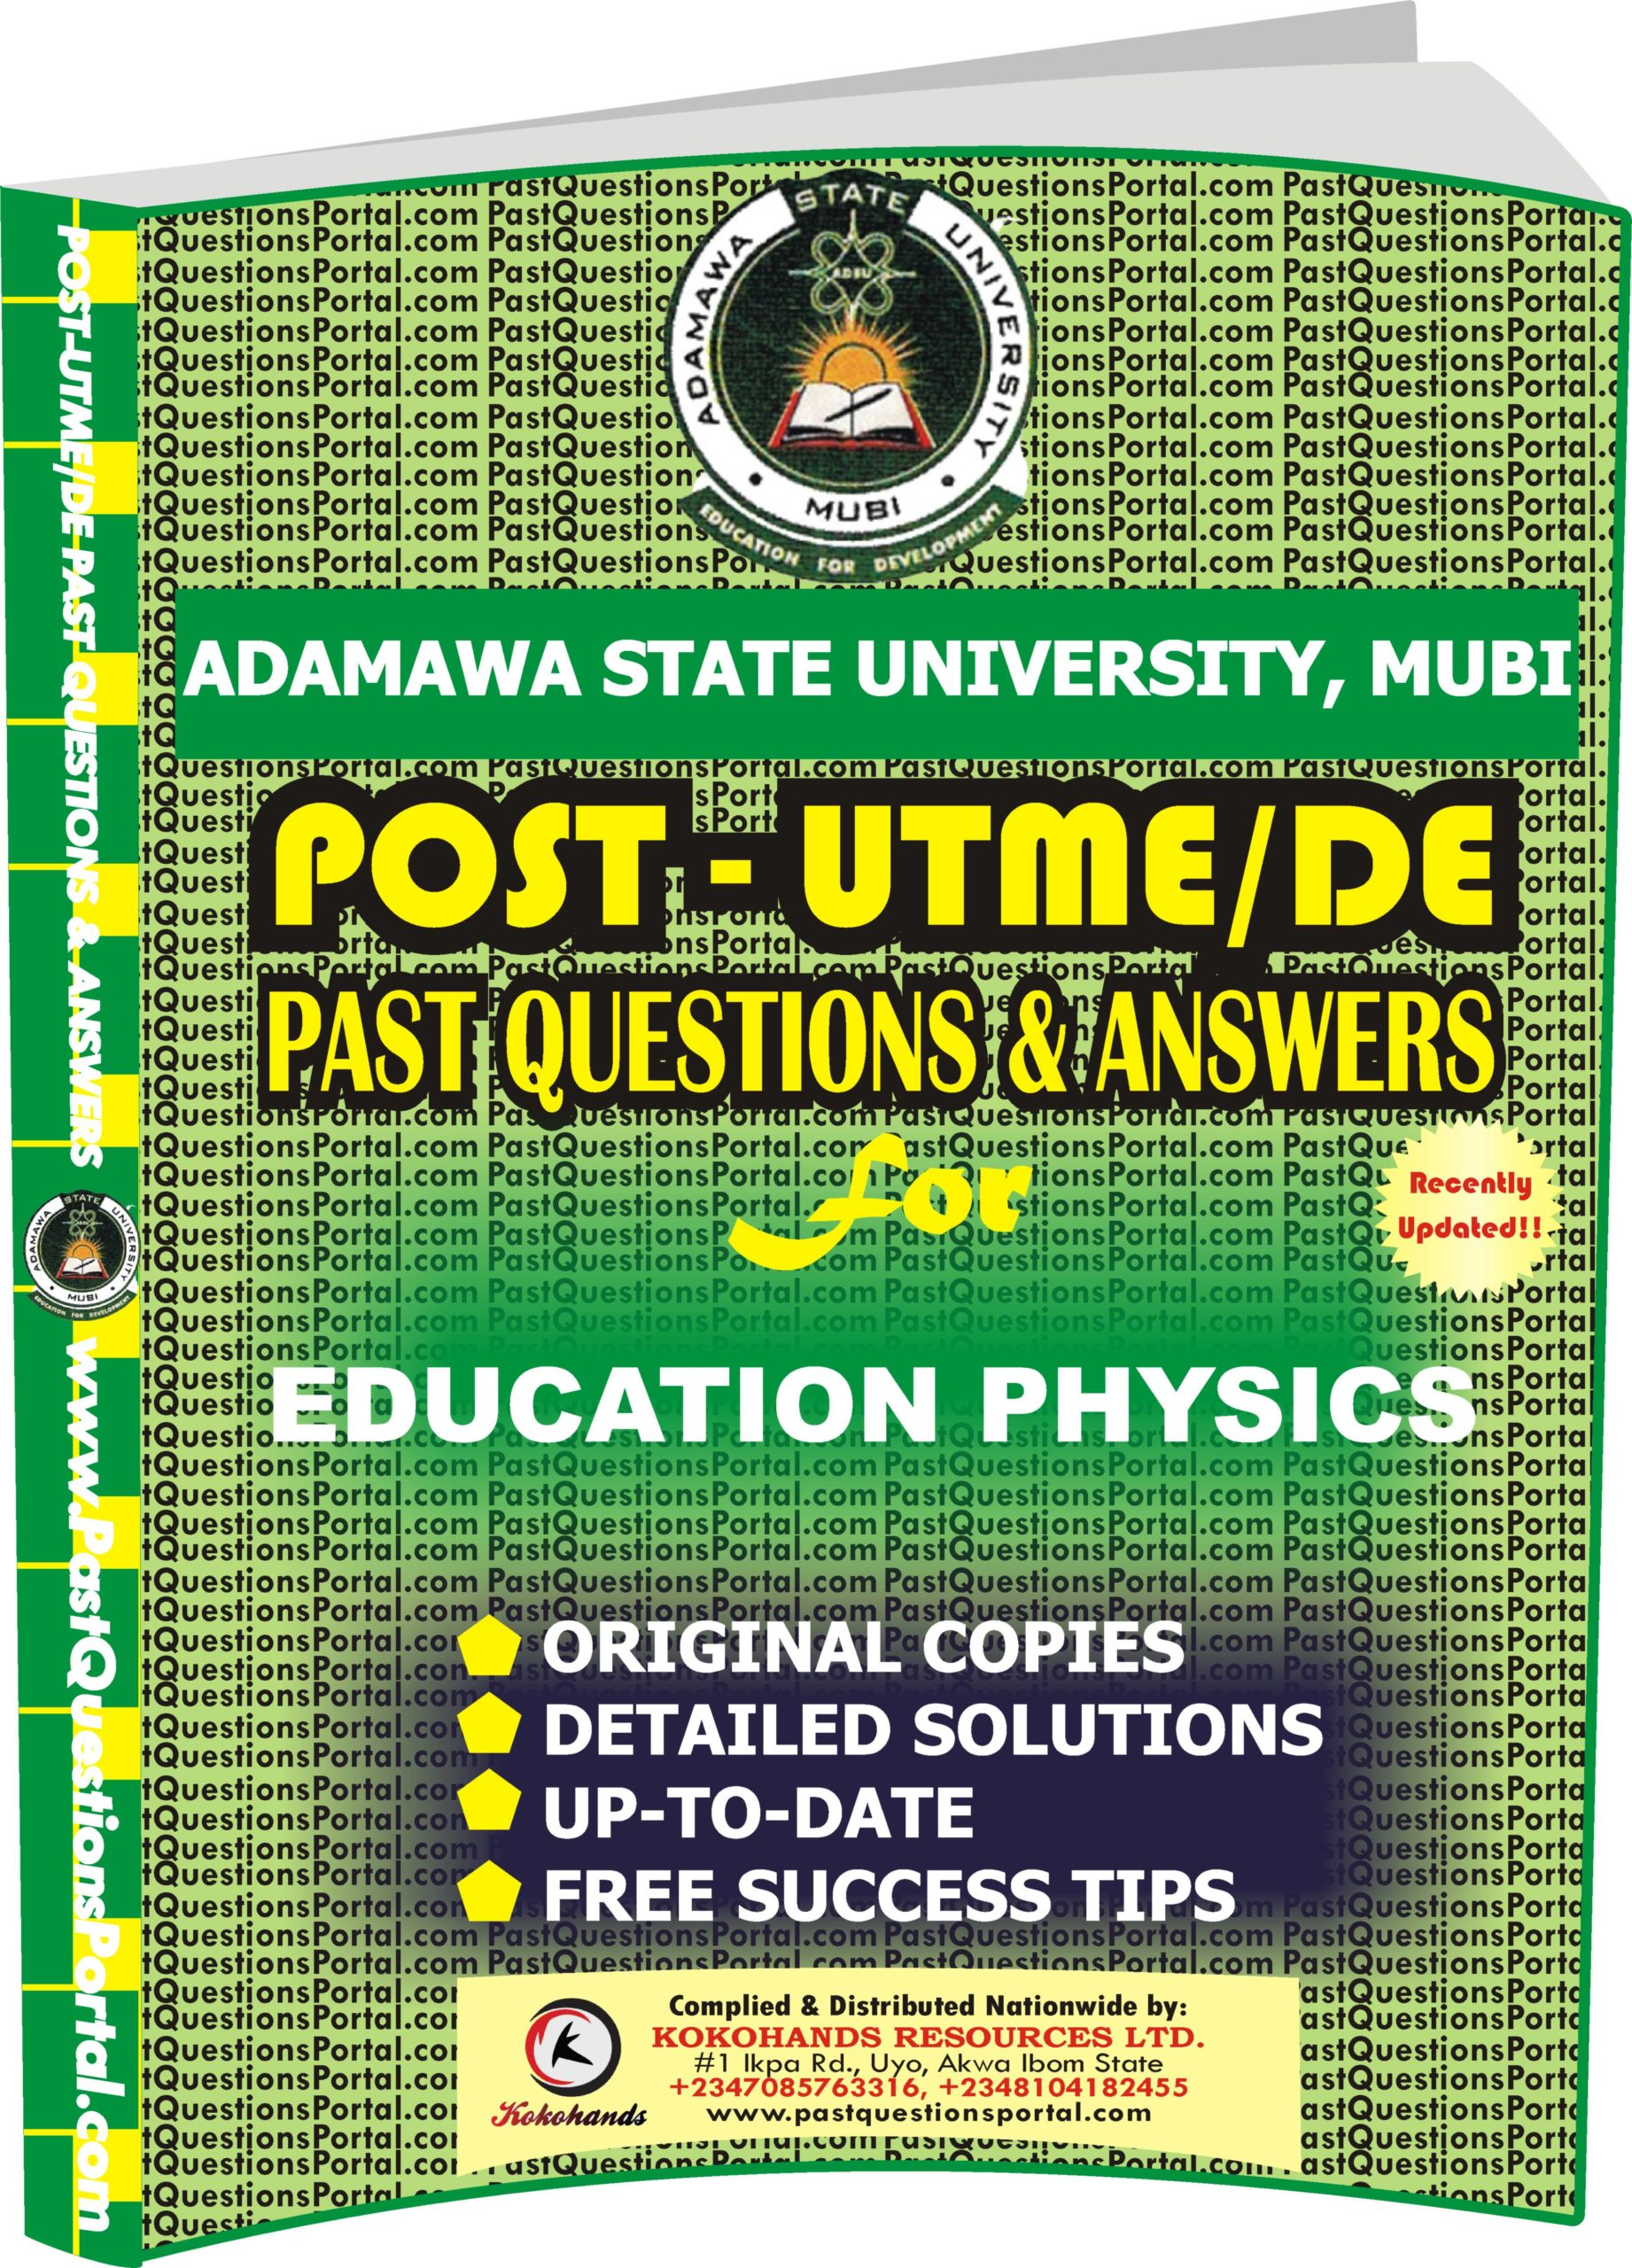 ADSU Post UTME Past Questions for EDUCATION PHYSICS